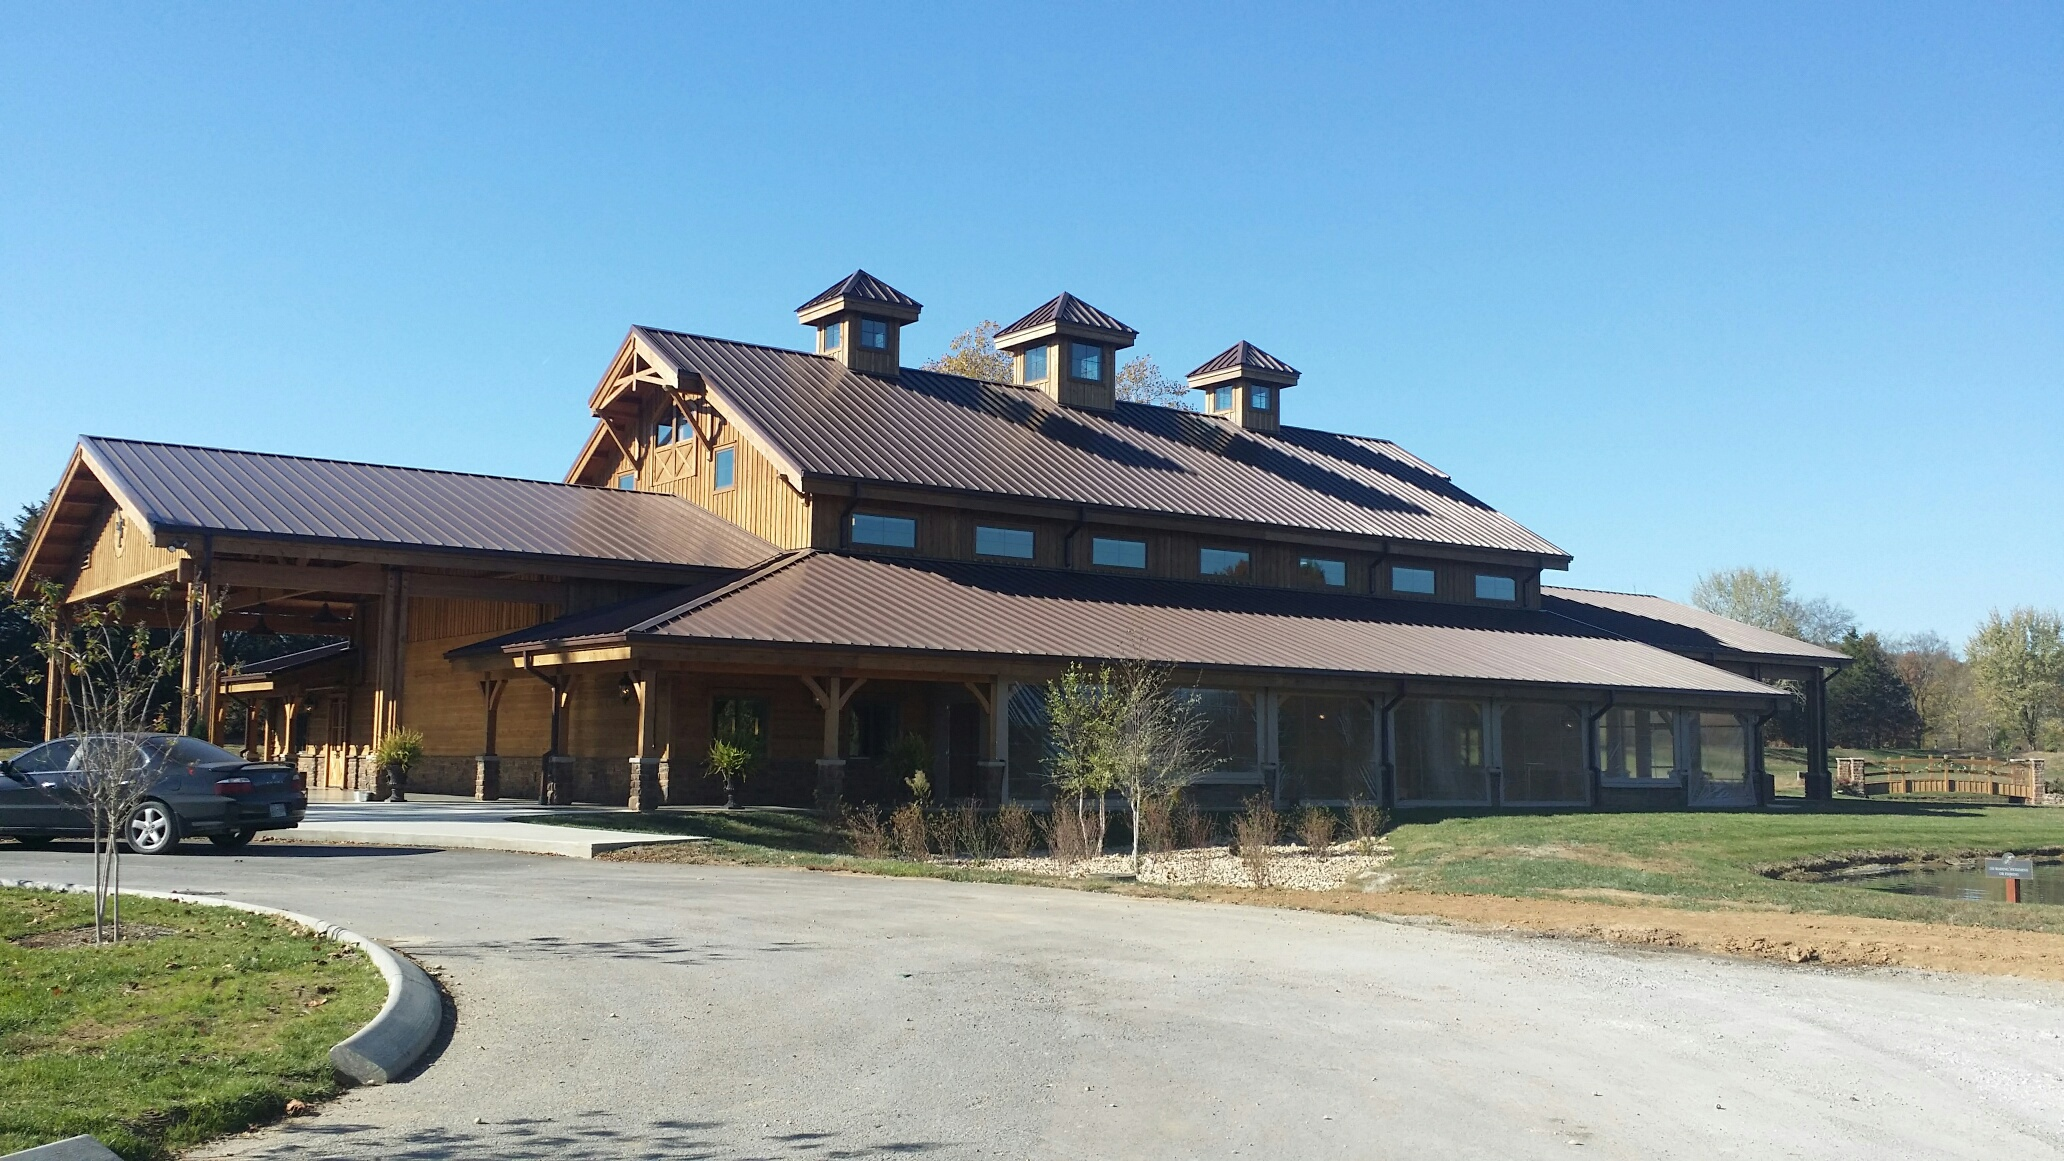 Medallion-Lok Replicates Traditional Barn Look on Historic Property in Tennessee